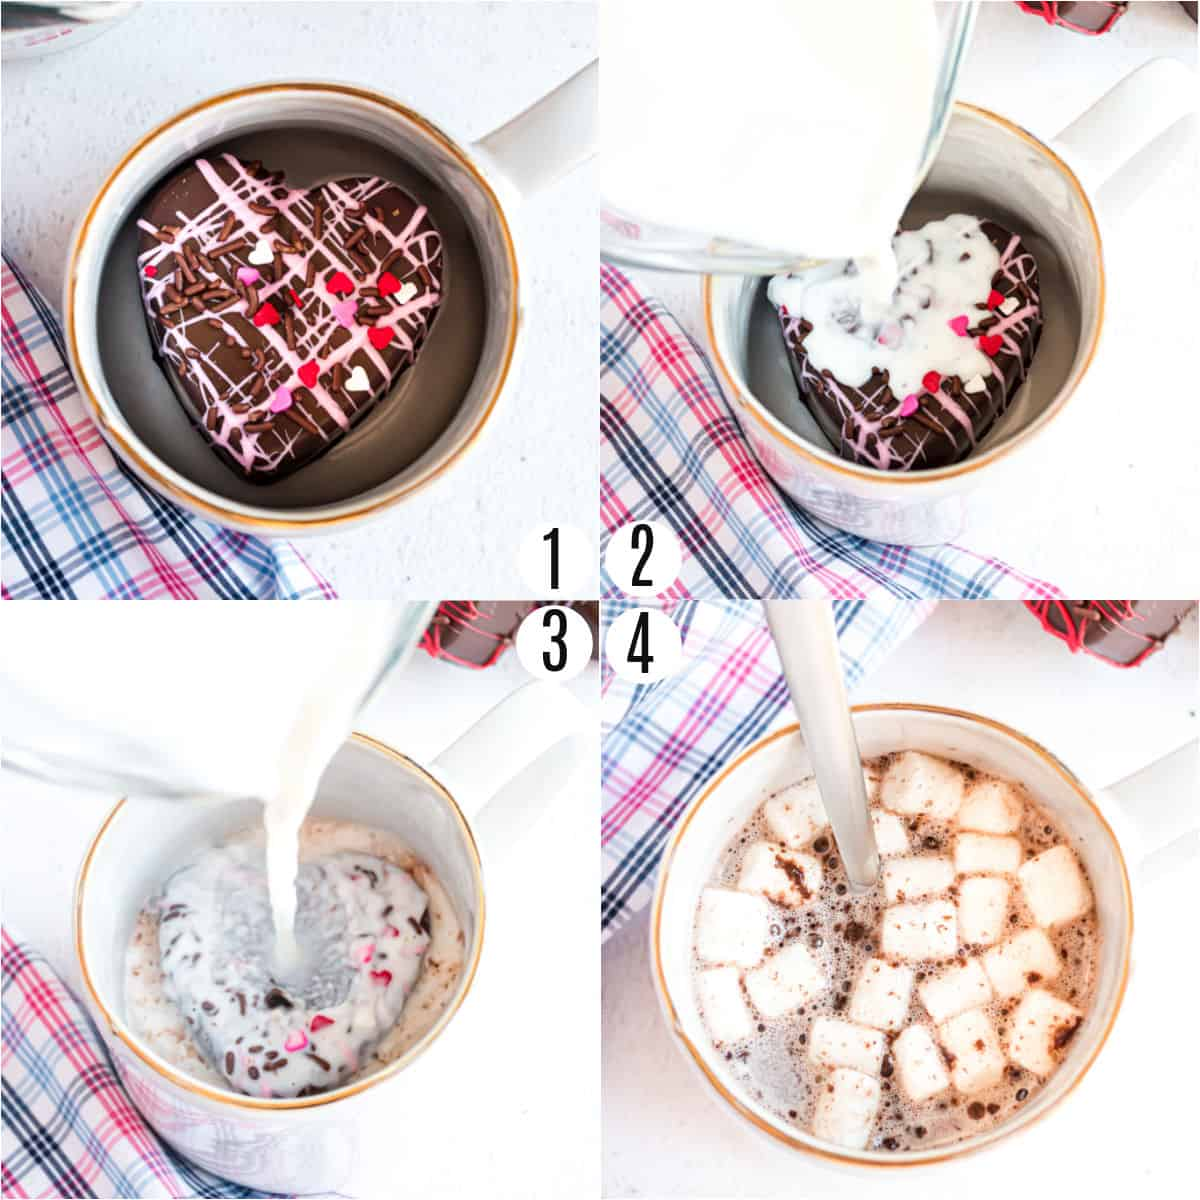 Step by step photos showing how to serve hot cocoa bombs for Valentine's Day.